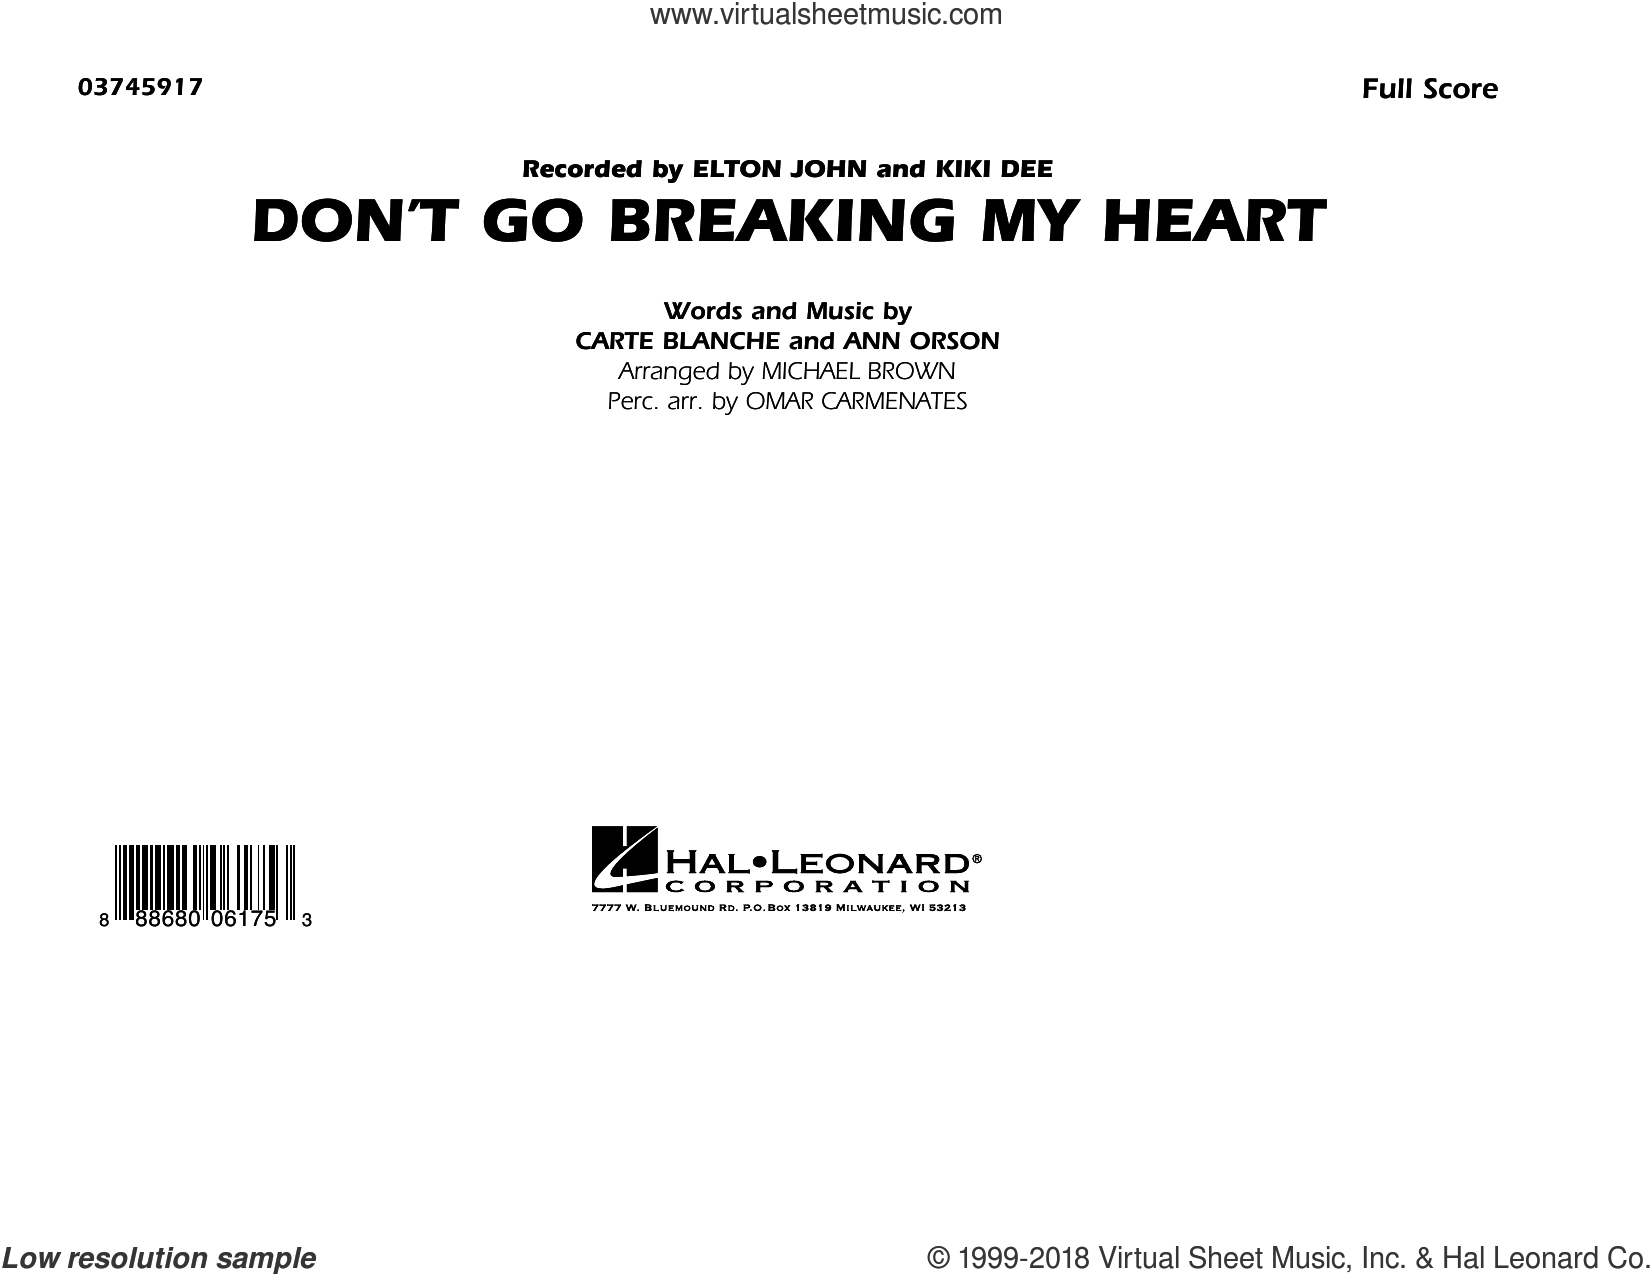 Don't Go Breaking My Heart (COMPLETE) sheet music for marching band by Elton John, Ann Orson, Carte Blanche and Michael Brown, intermediate skill level